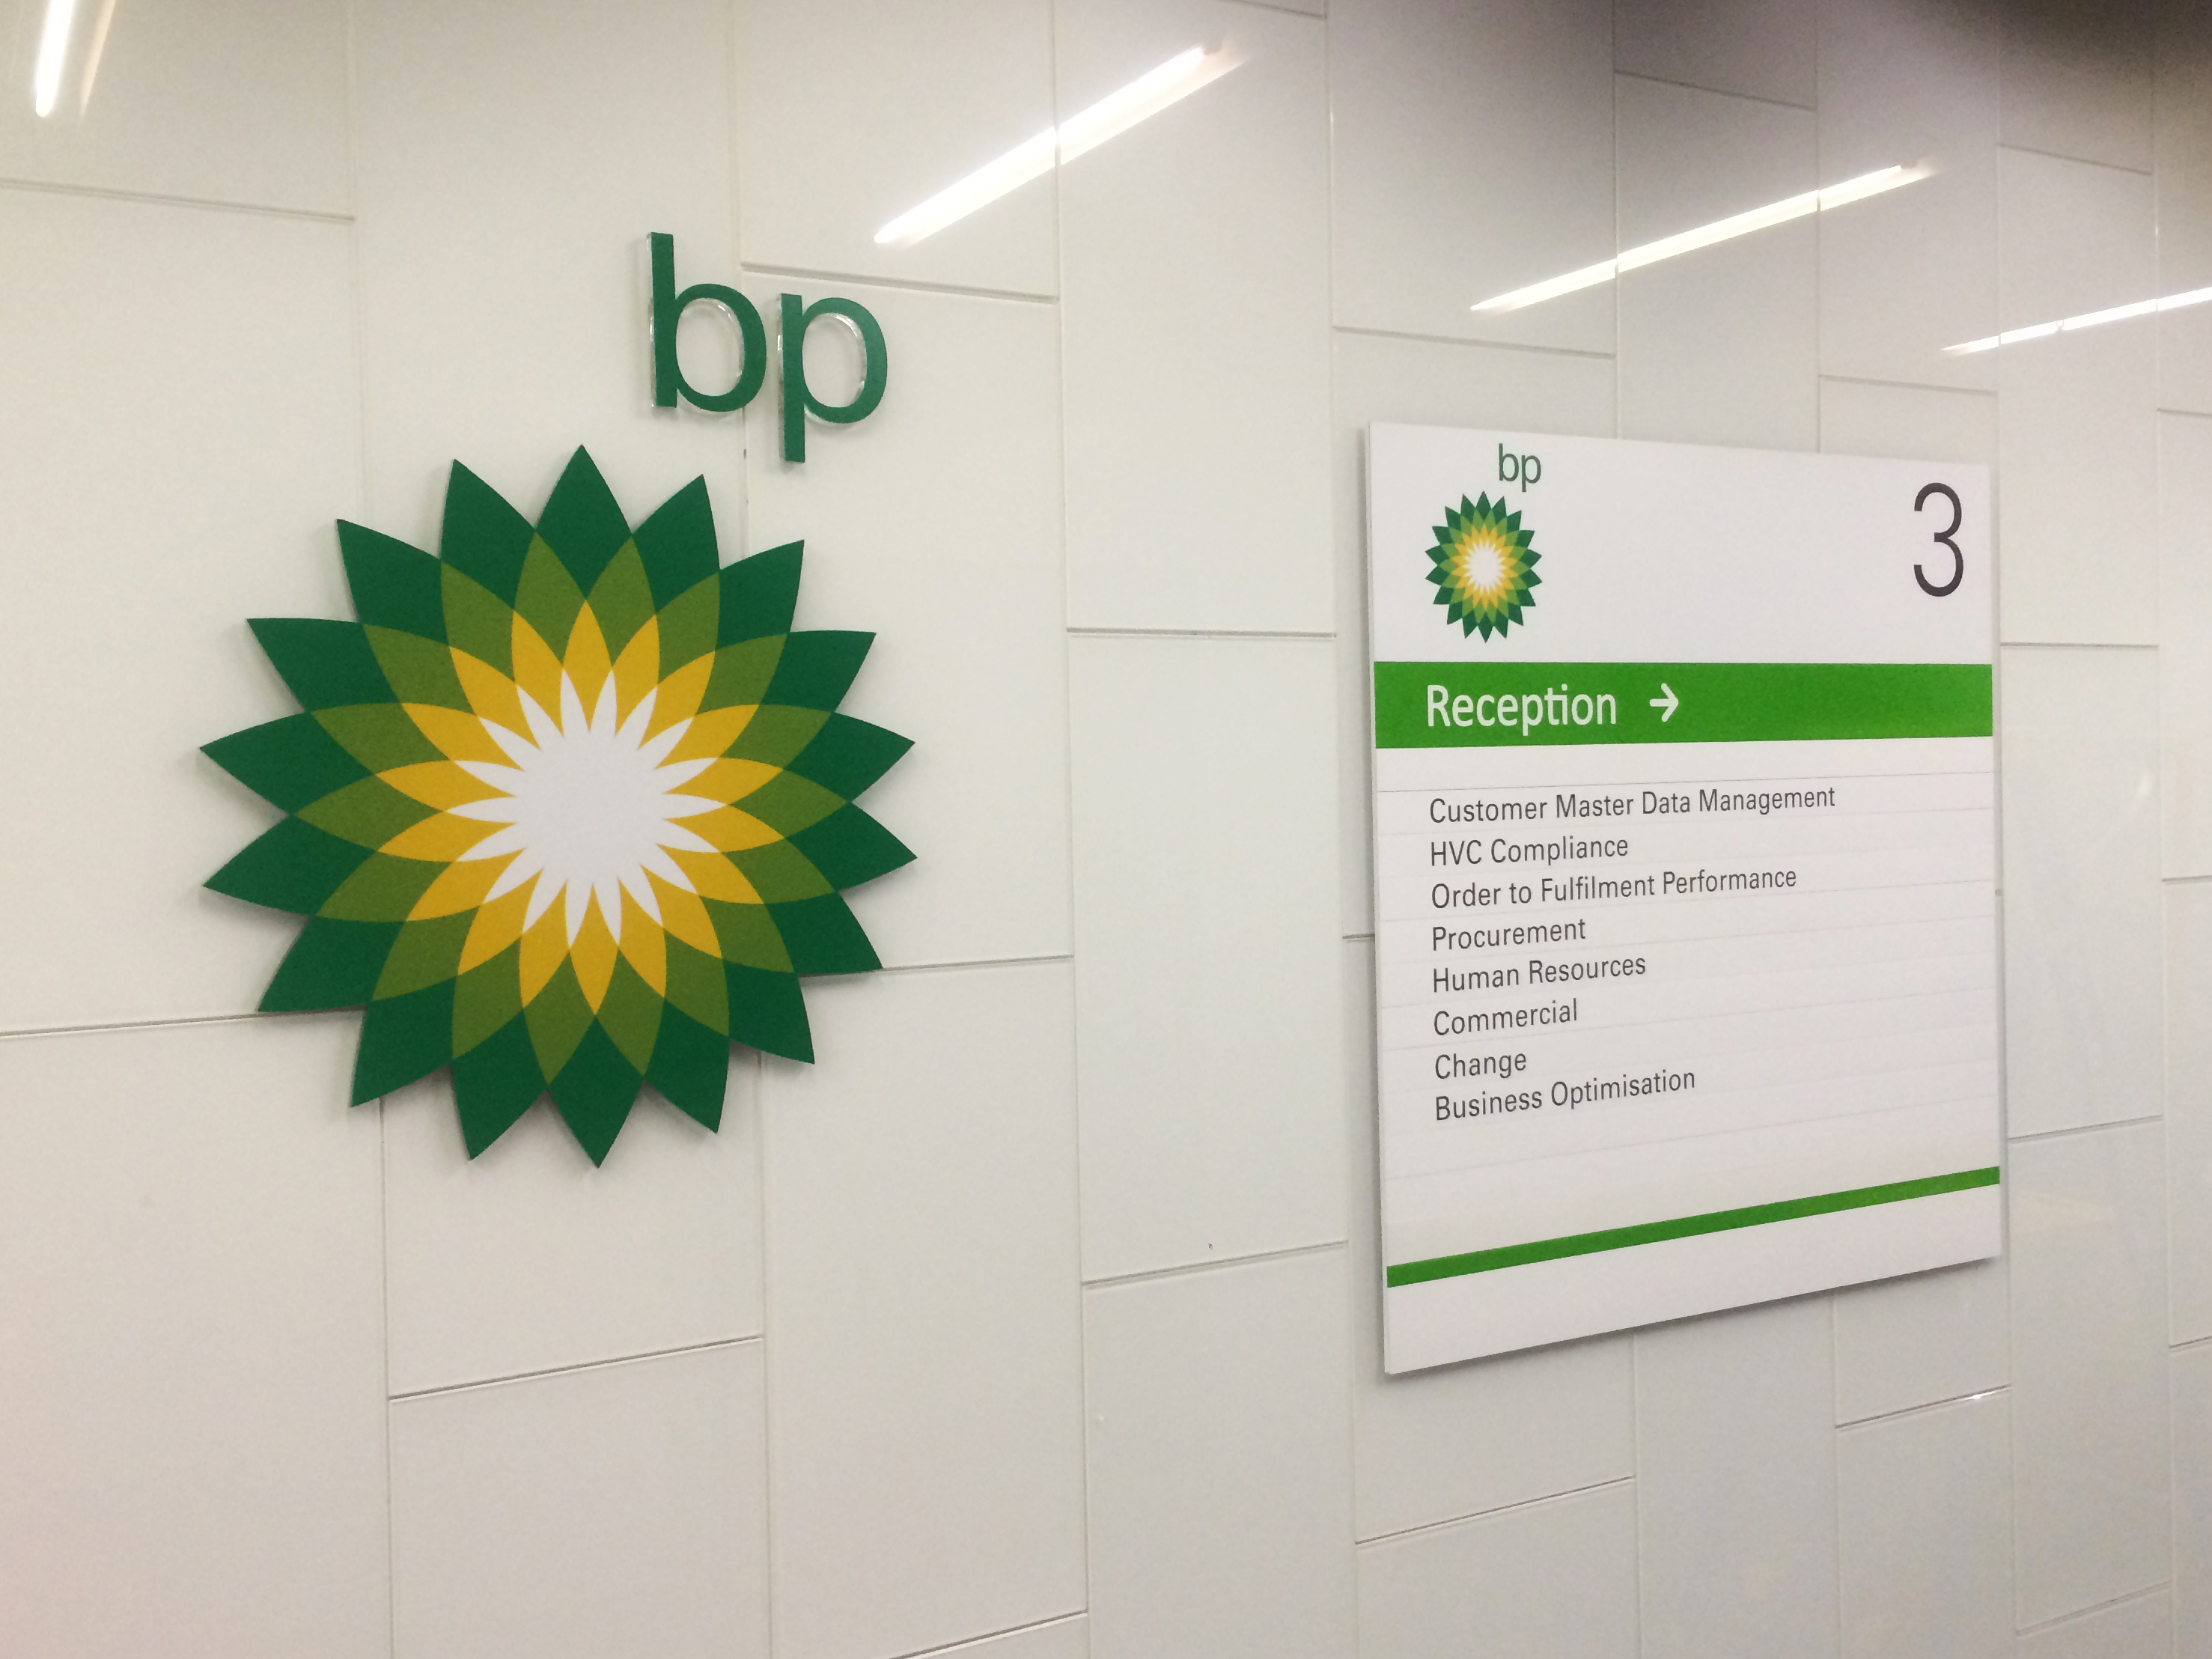 bp-reception-a-directory-signage